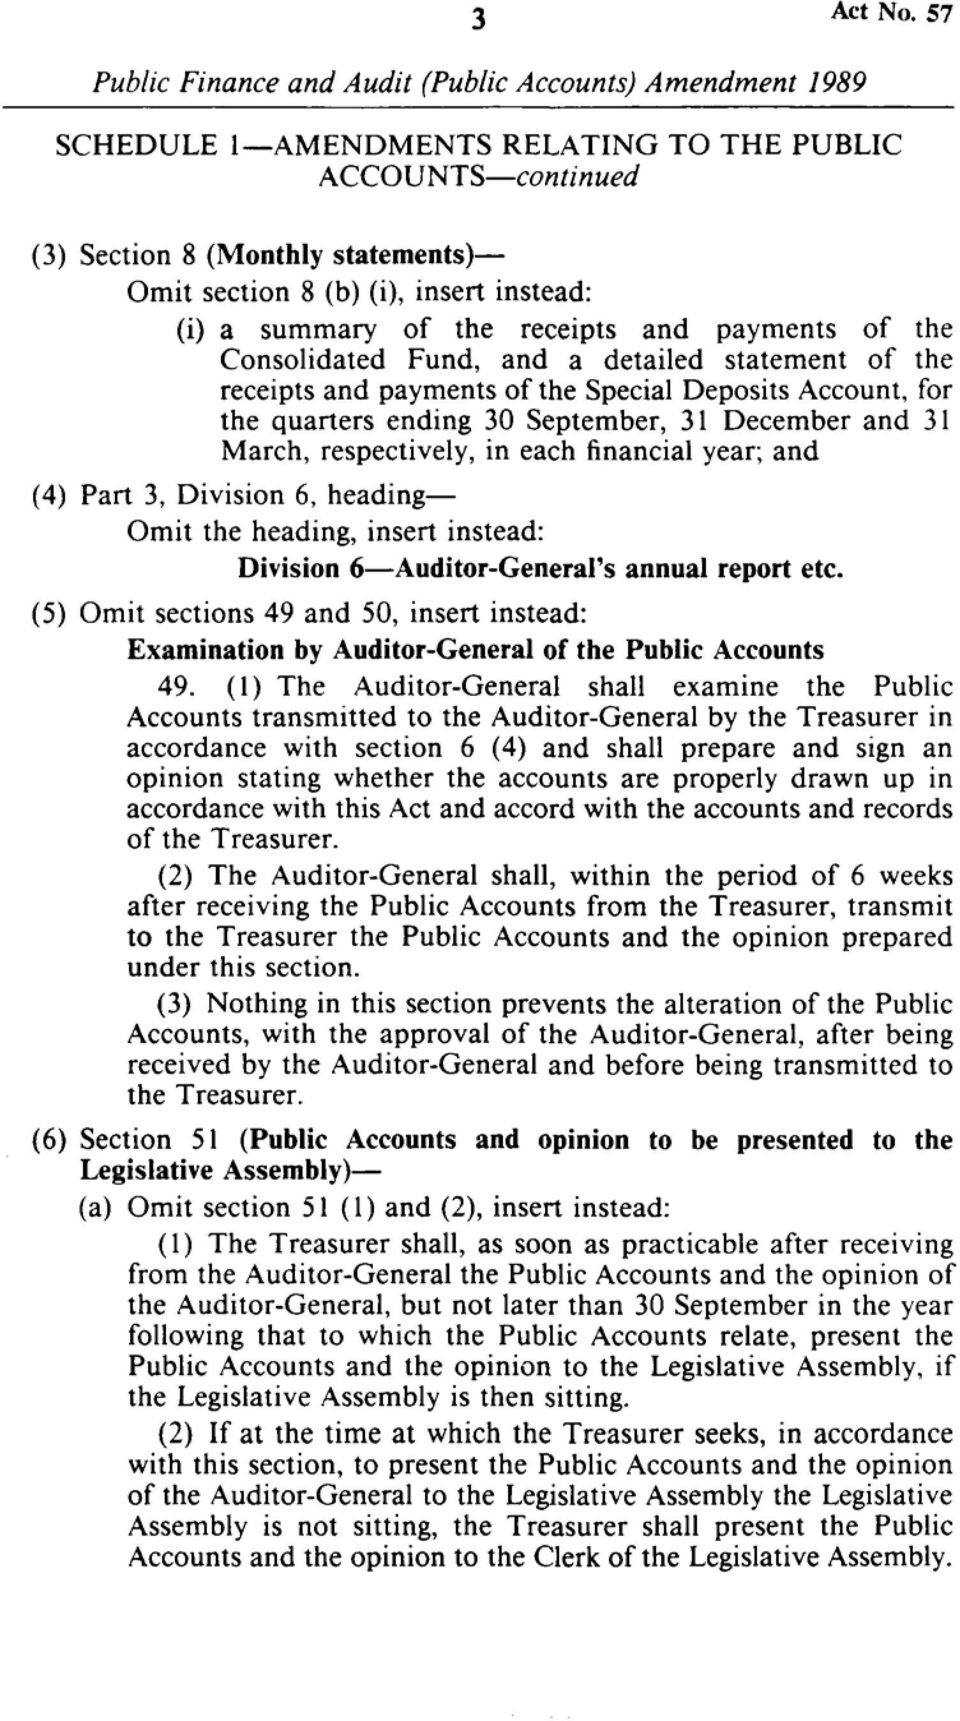 receipts and payments of the Special Deposits Account, for the quarters ending 30 September, 31 December and 31 March, respectively, in each financial year; and (4) Part 3, Division 6, heading Omit